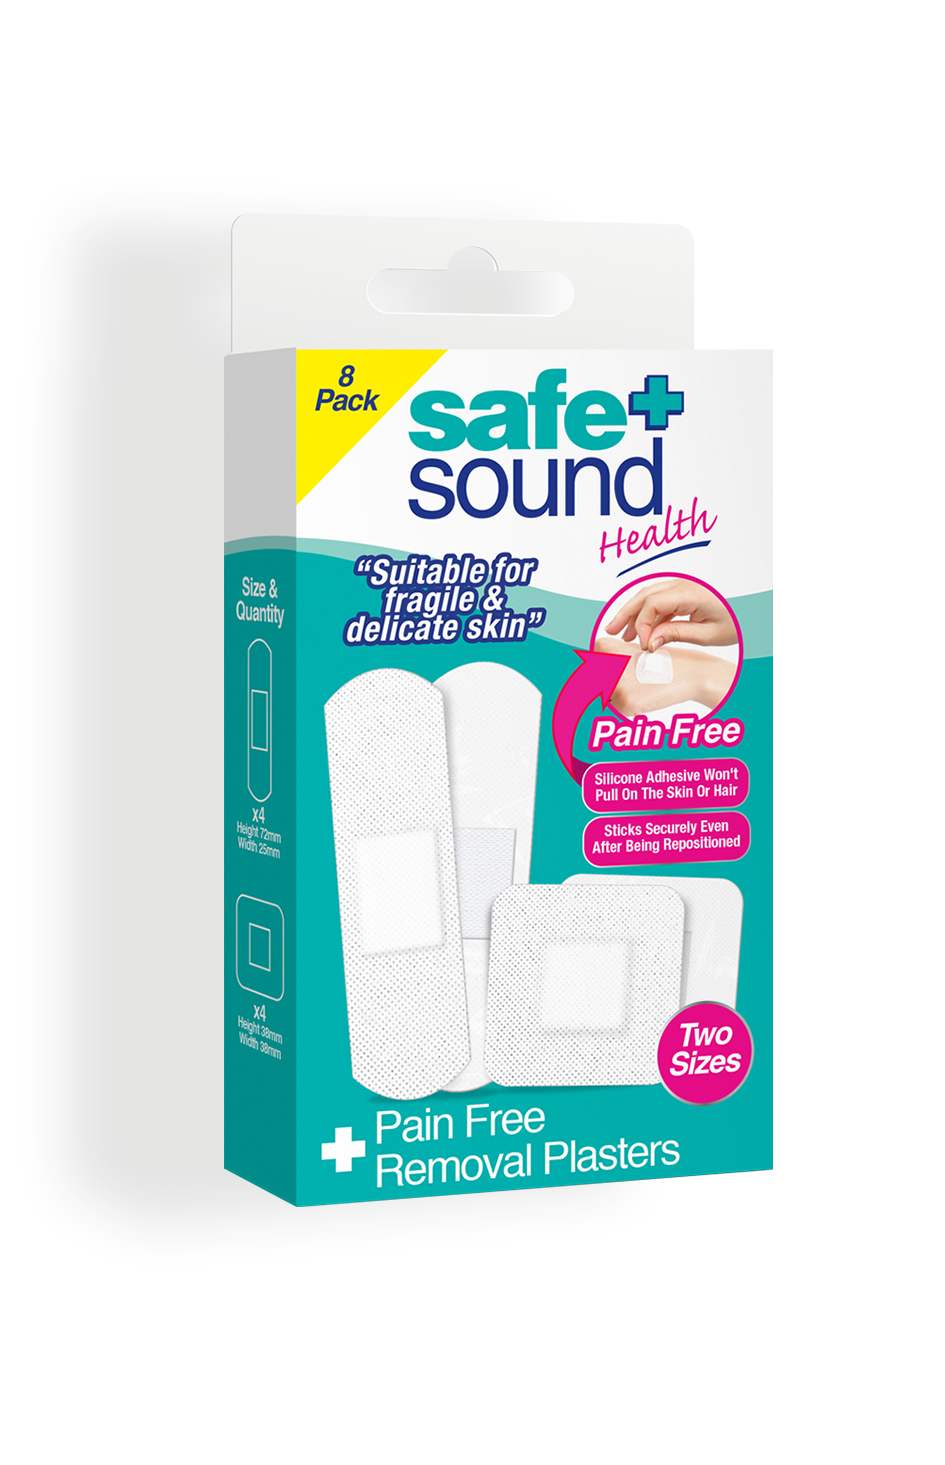 Safe and Sound Health Pain-free Removal Plasters